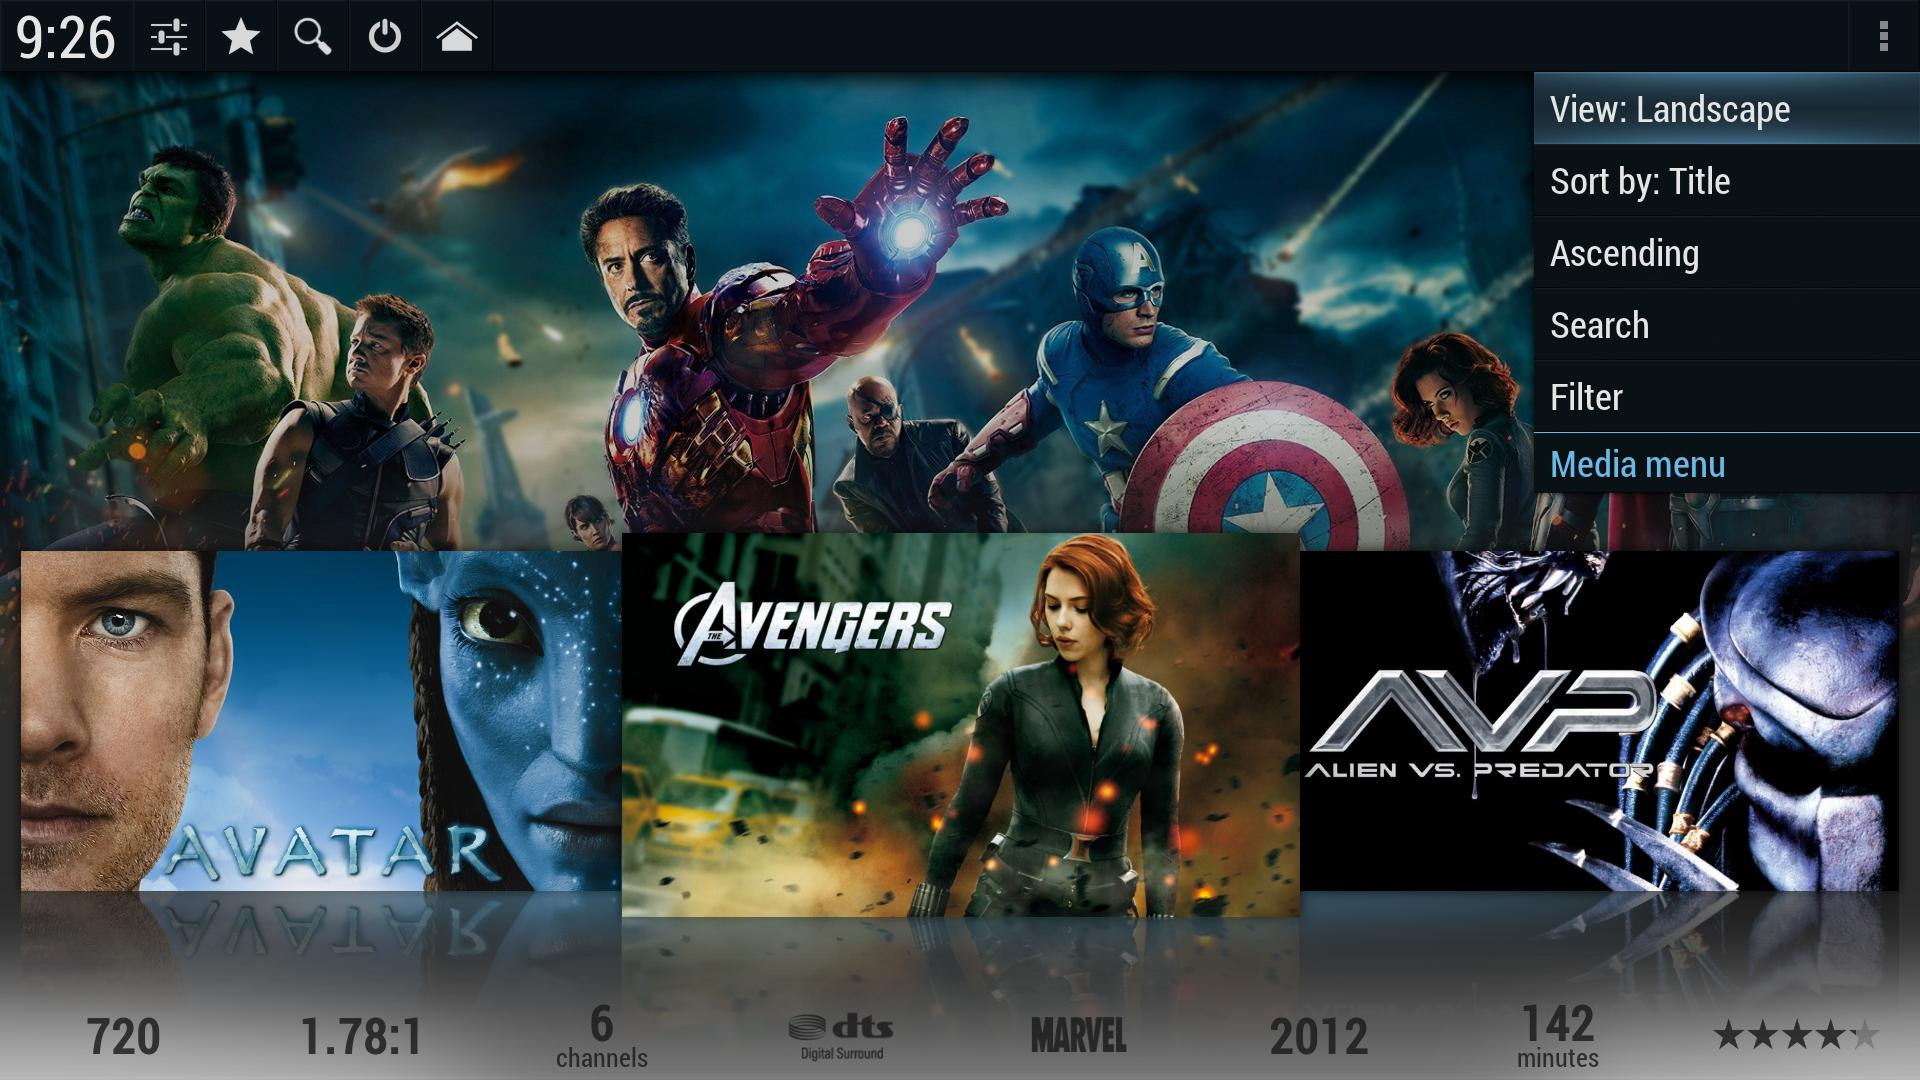 Kodi/XBMC skin: Droid by BigNoid